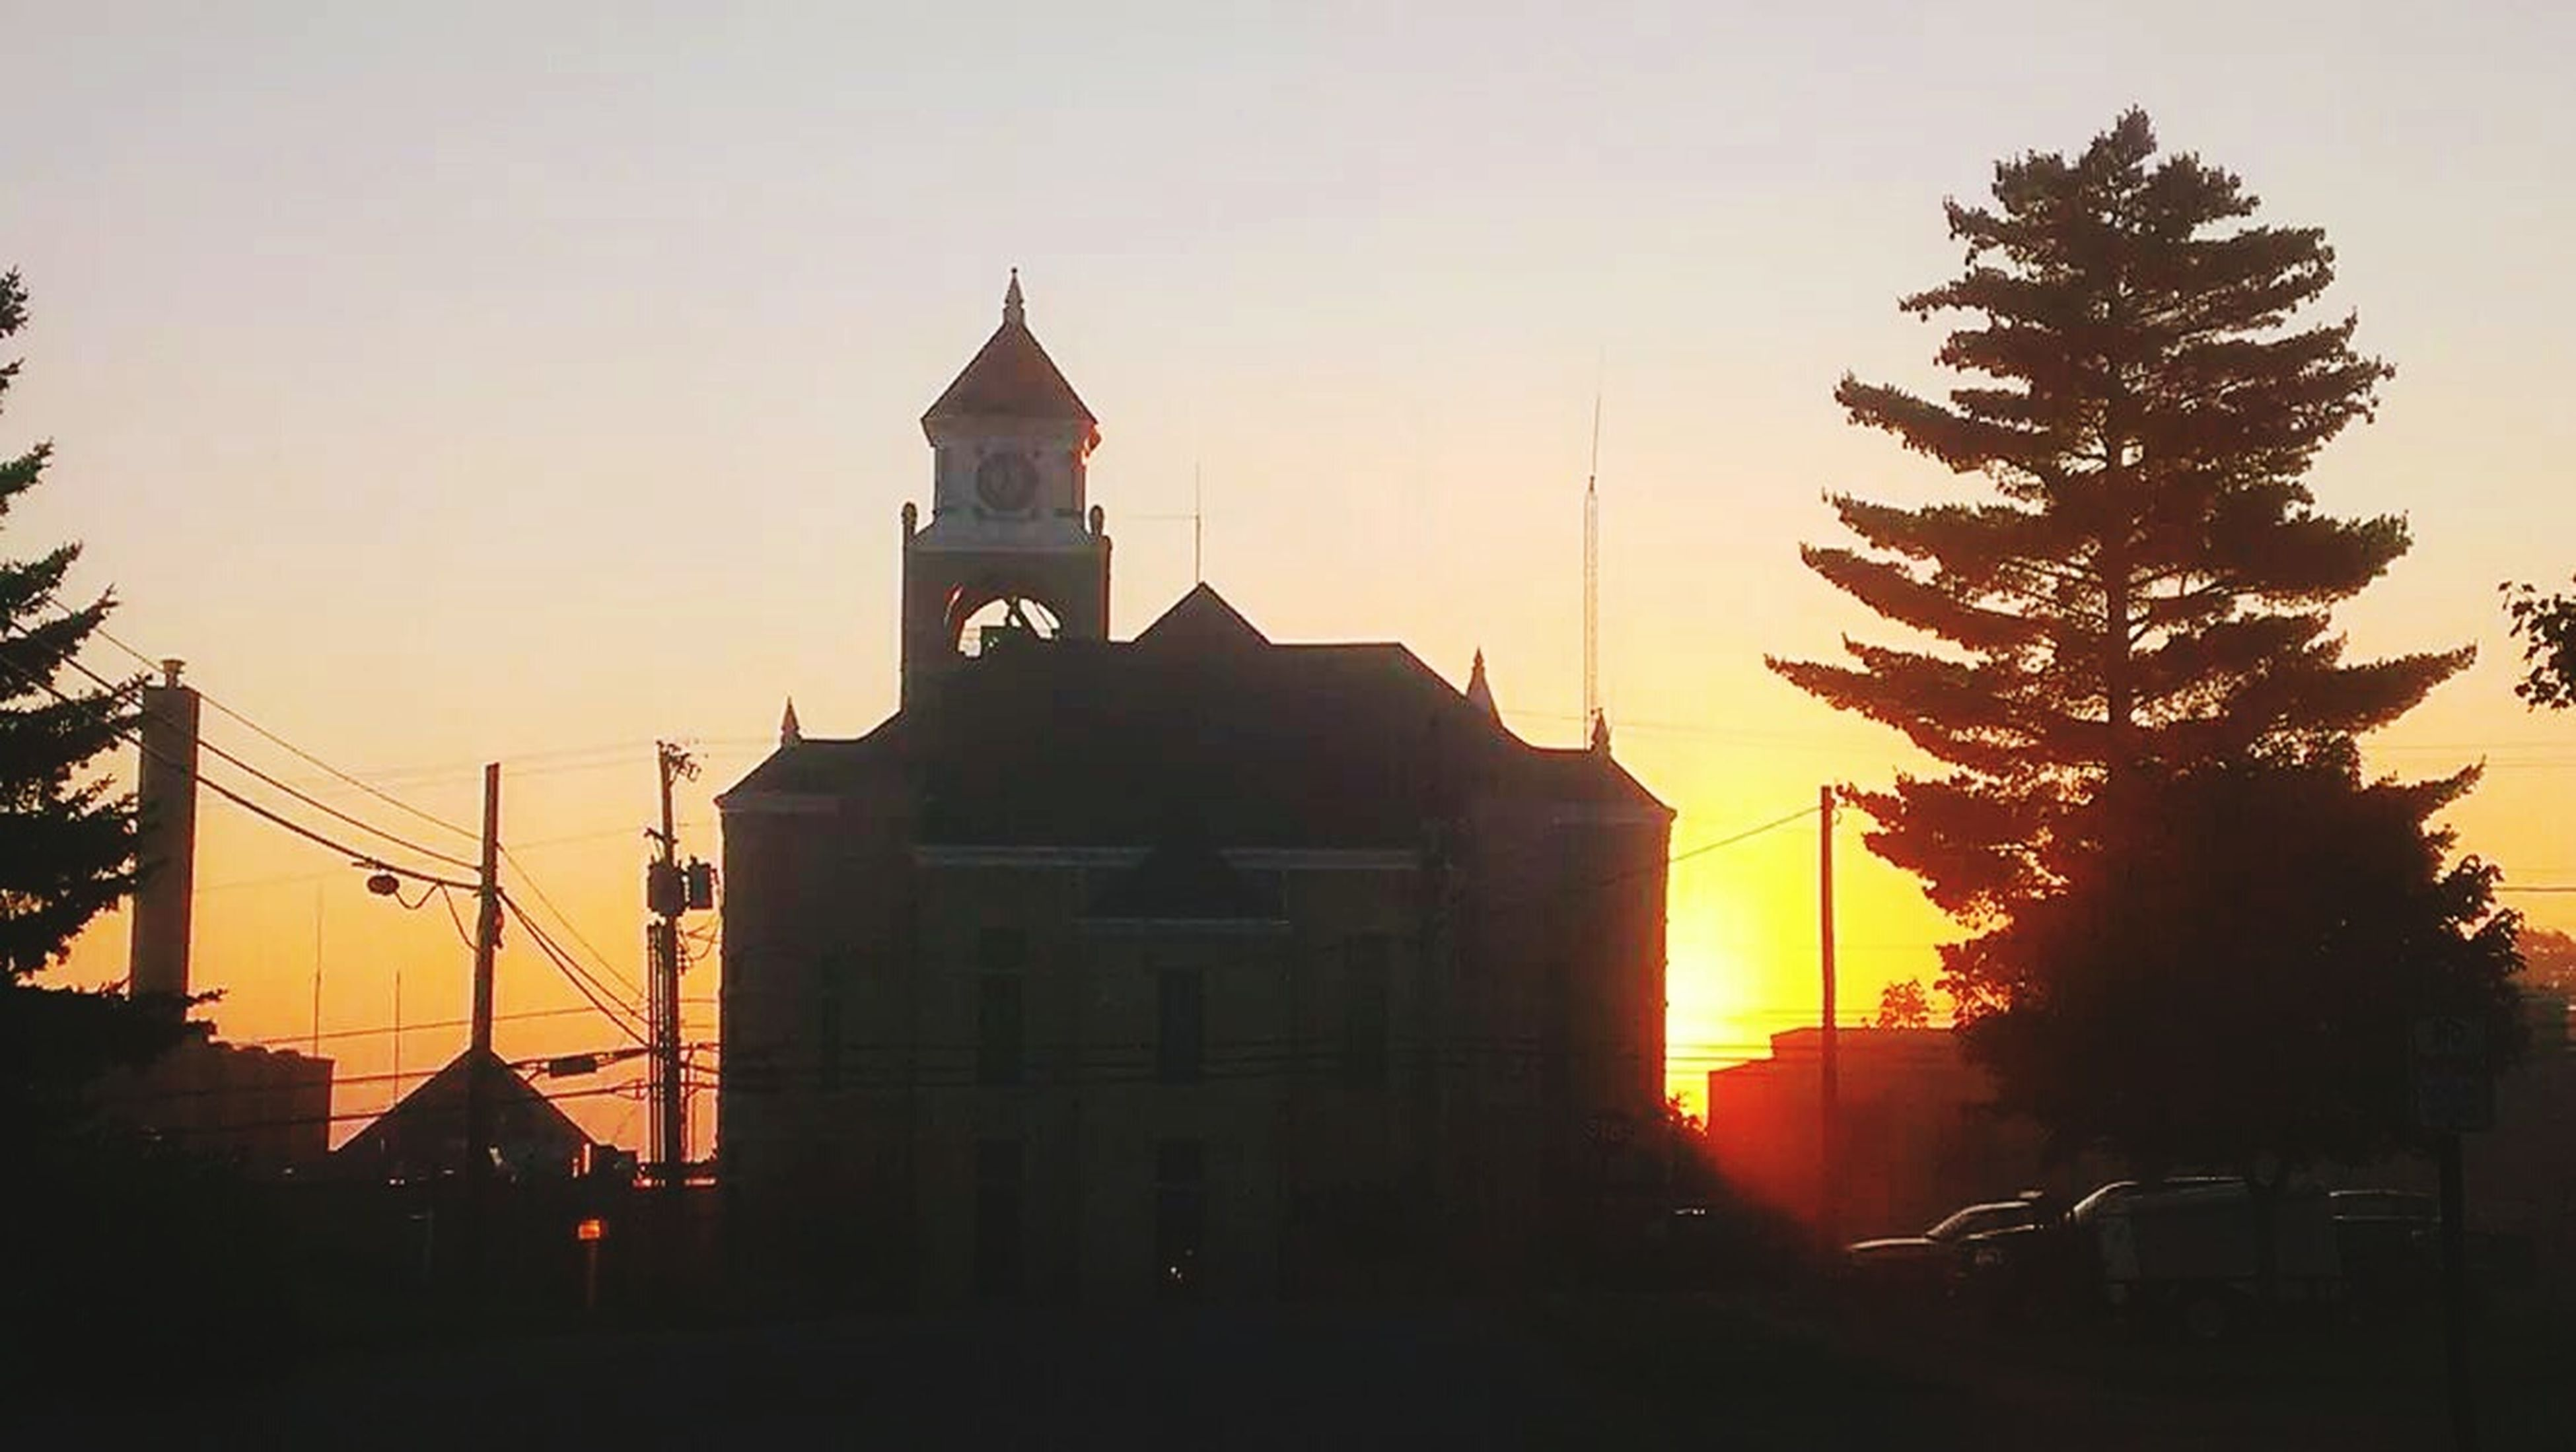 building exterior, architecture, sunset, built structure, place of worship, religion, spirituality, church, silhouette, clear sky, orange color, low angle view, sun, sky, copy space, tree, steeple, outdoors